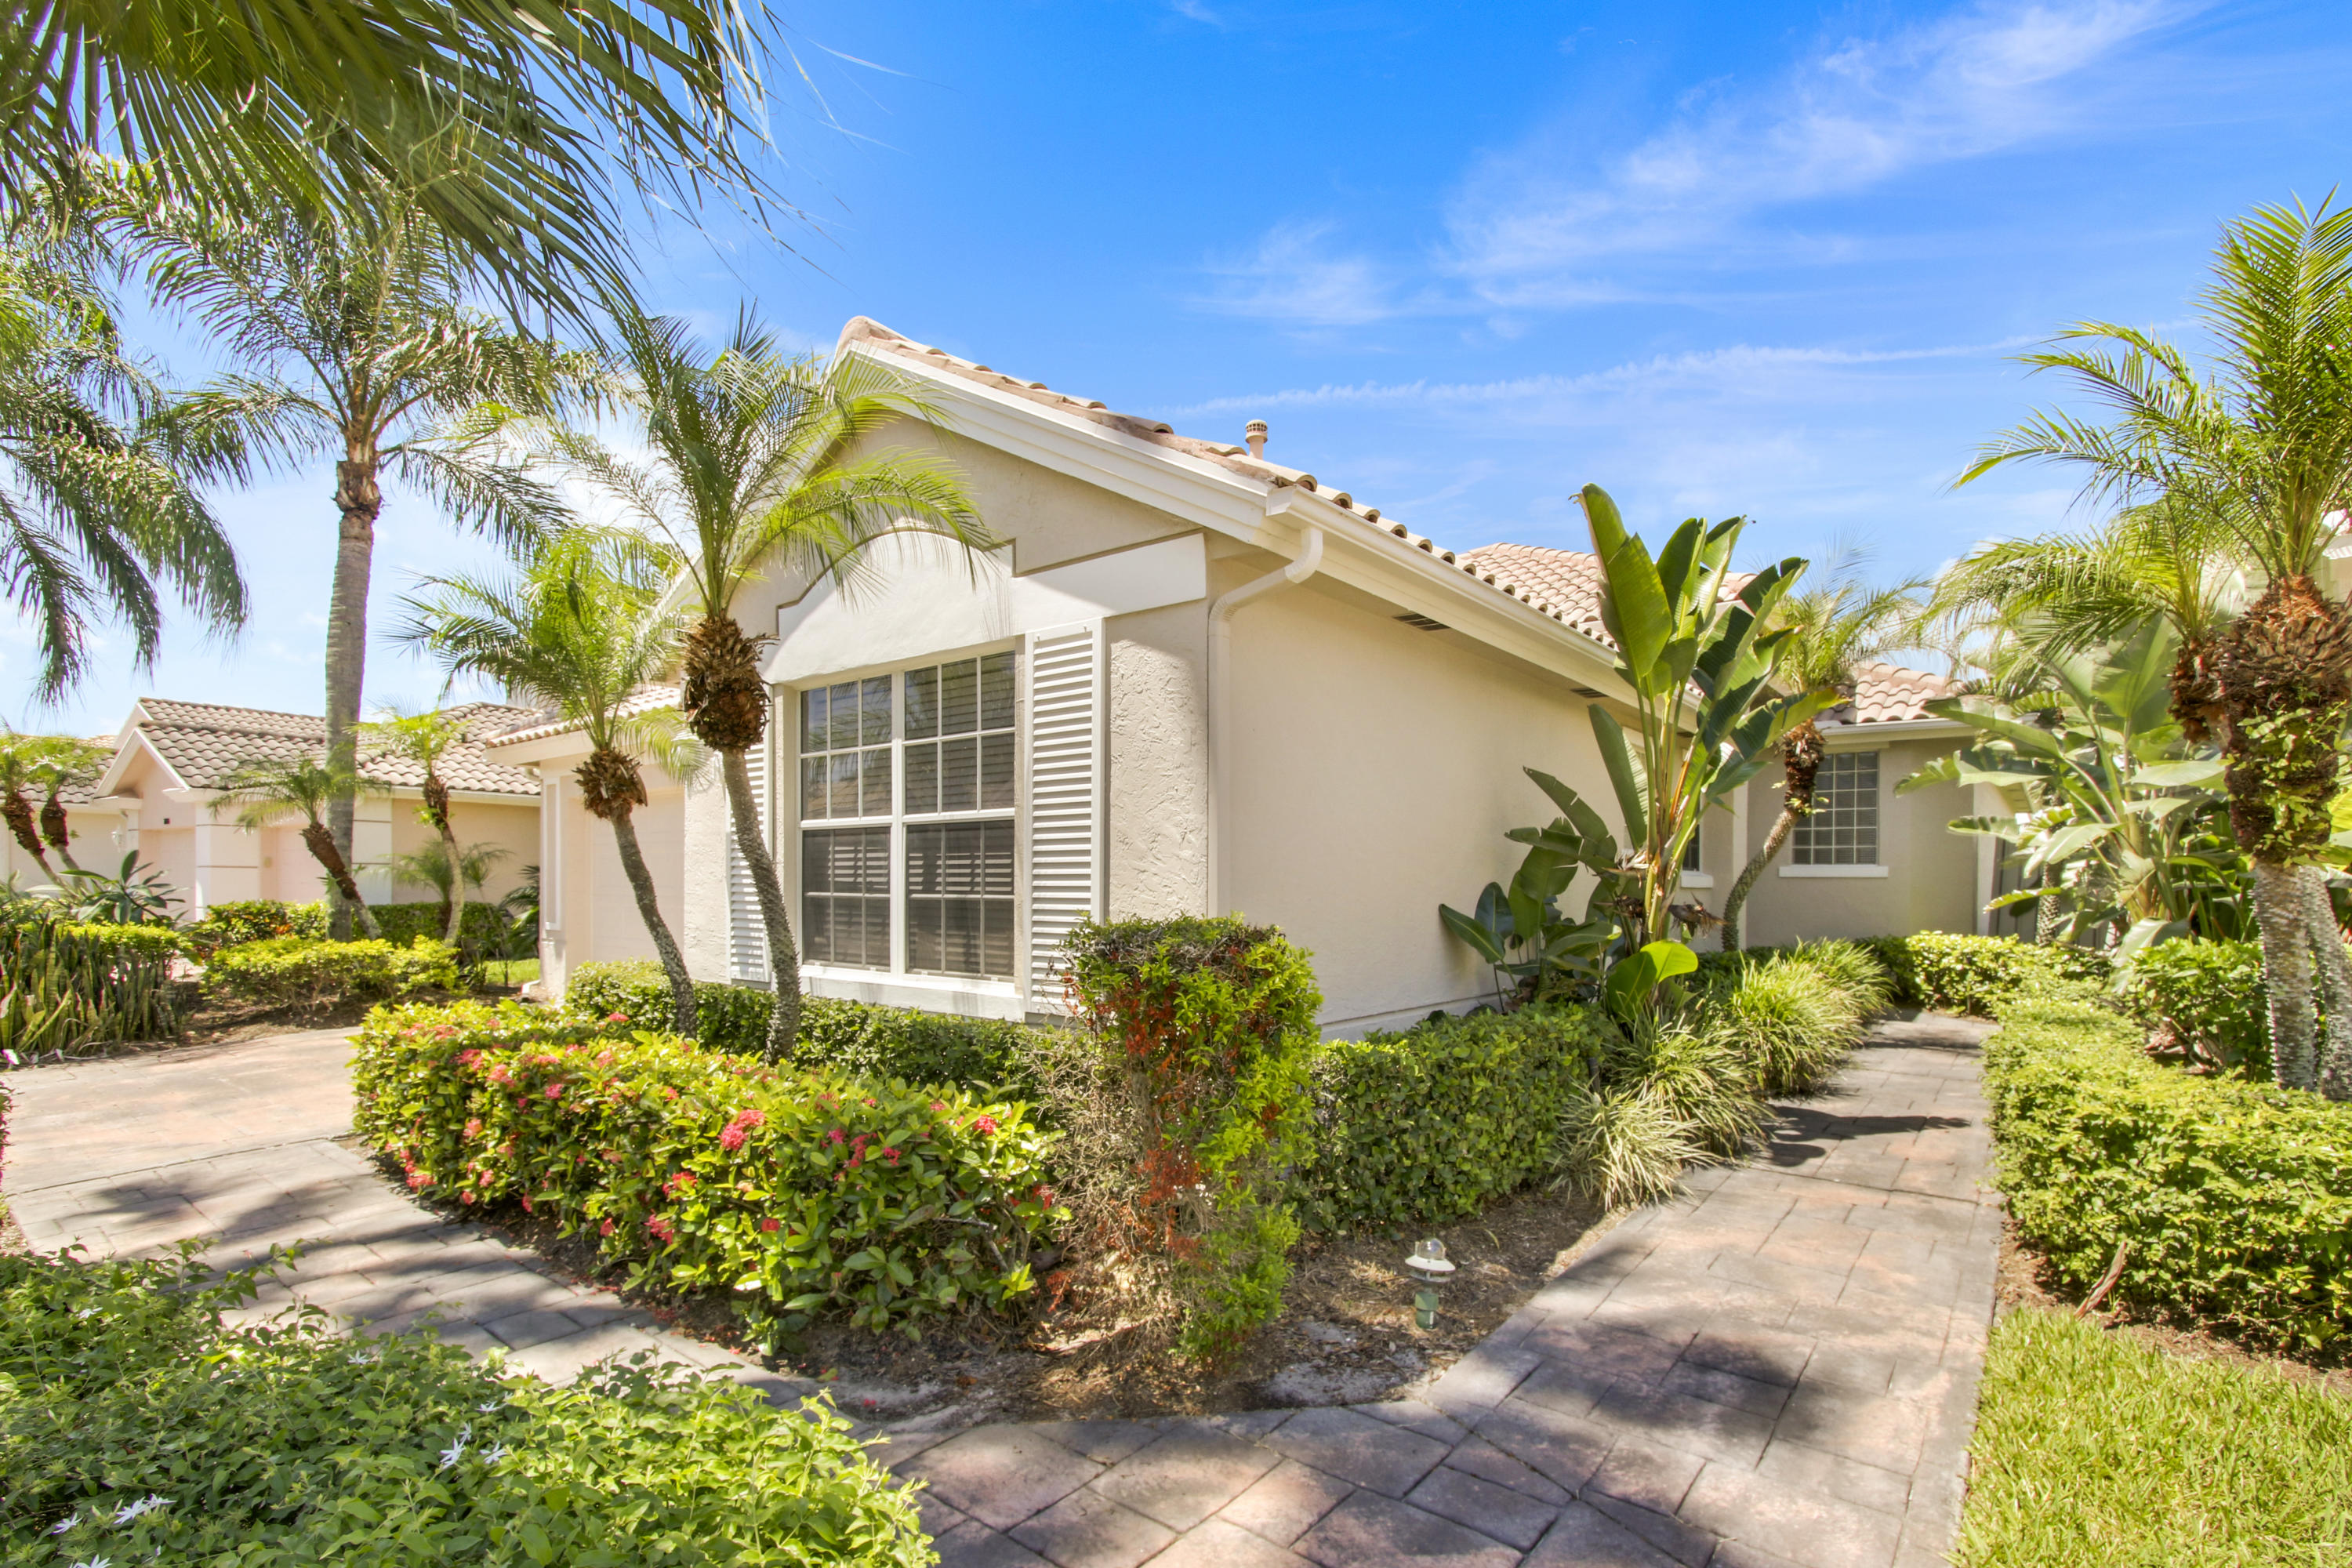 728 Pinehurst Way, Palm Beach Gardens, Florida 33418, 3 Bedrooms Bedrooms, ,3 BathroomsBathrooms,F,Single family,Pinehurst,RX-10454551